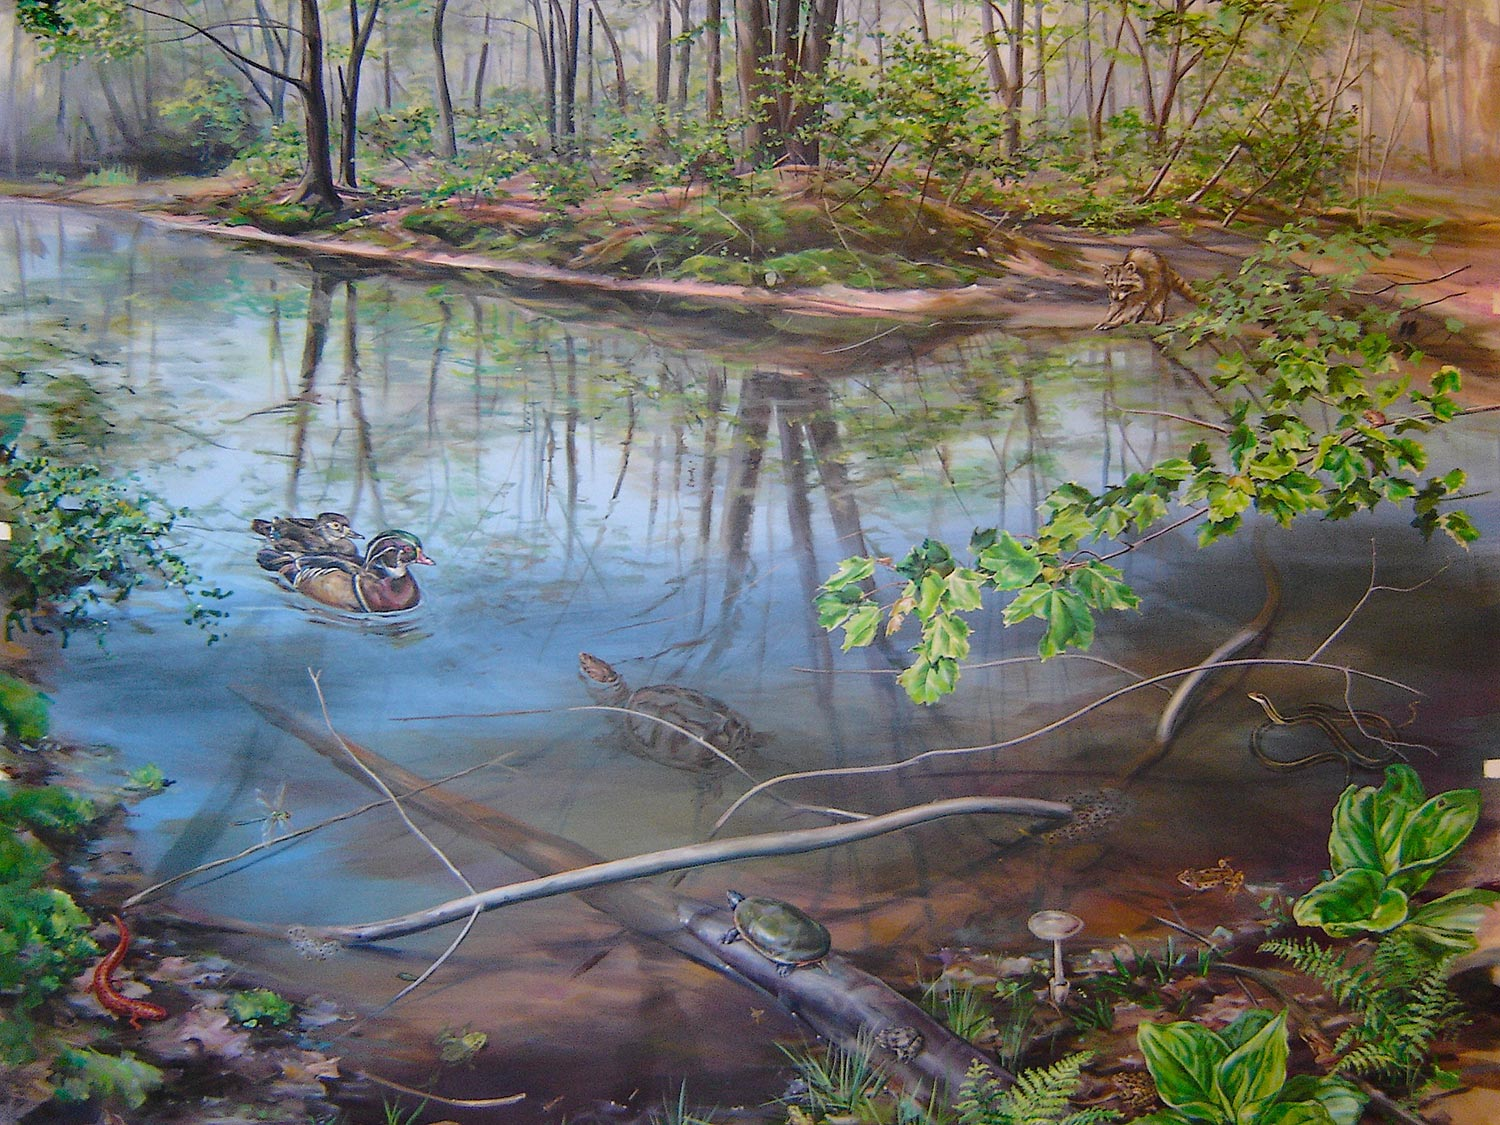 vernal pool with ducks and amphibians